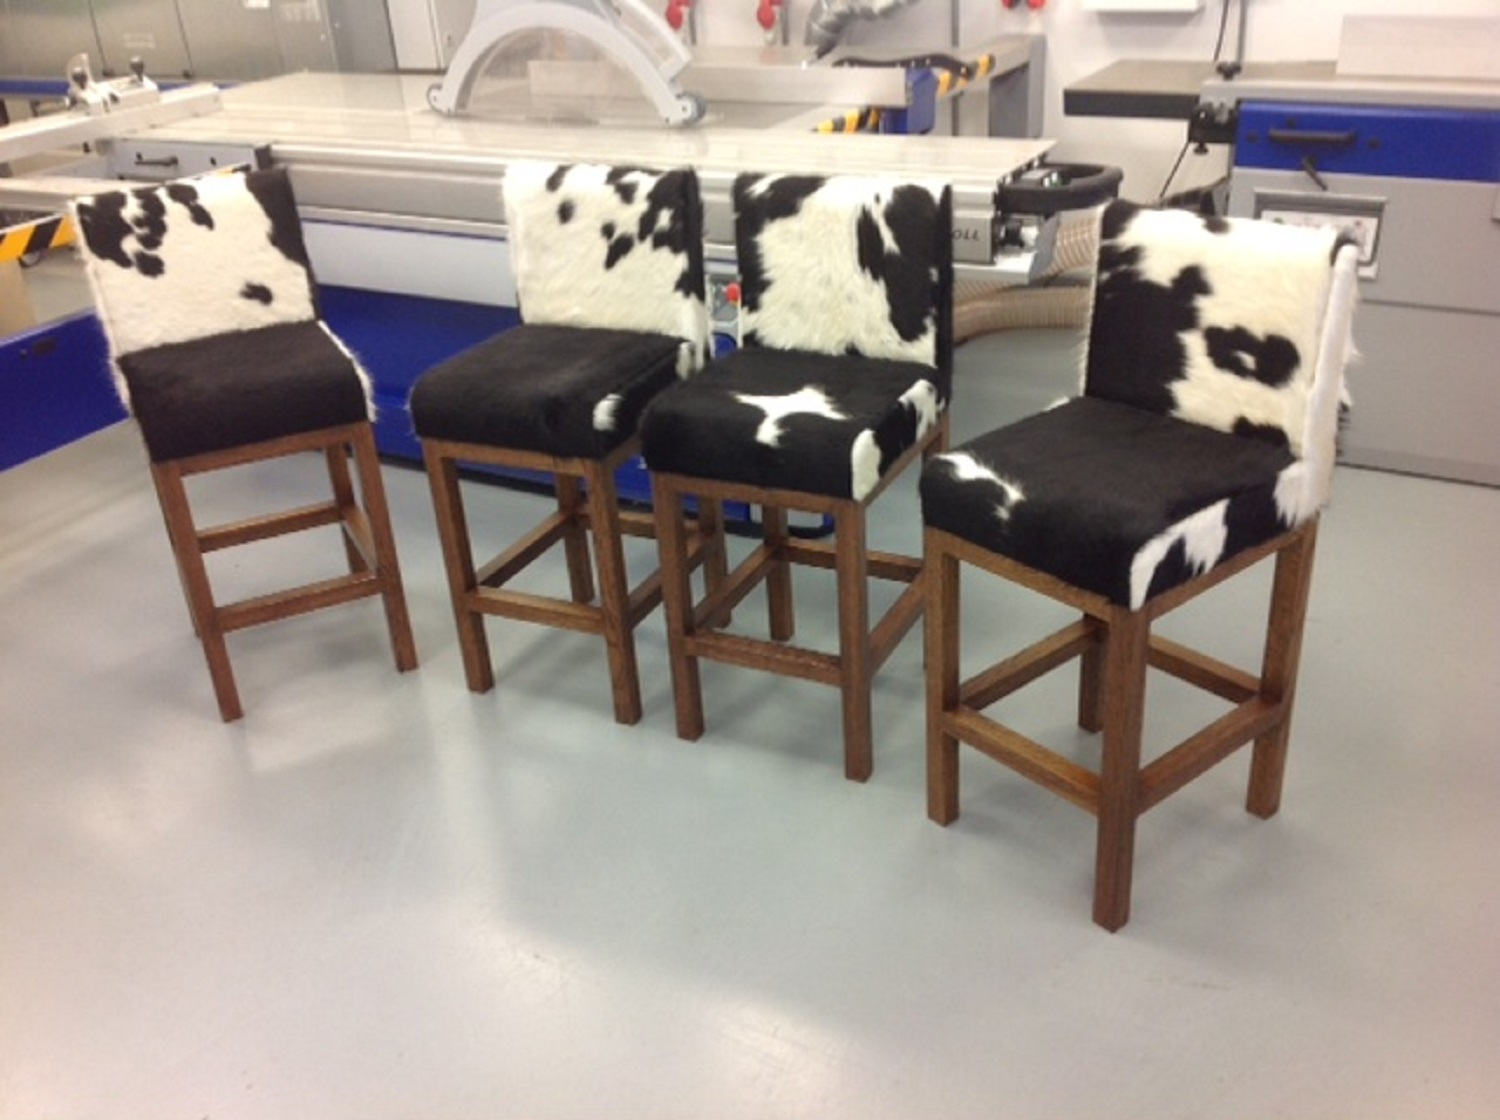 Stupendous Cowhide Dining Chairs Fun And Stylish Choice Of Dining Bralicious Painted Fabric Chair Ideas Braliciousco